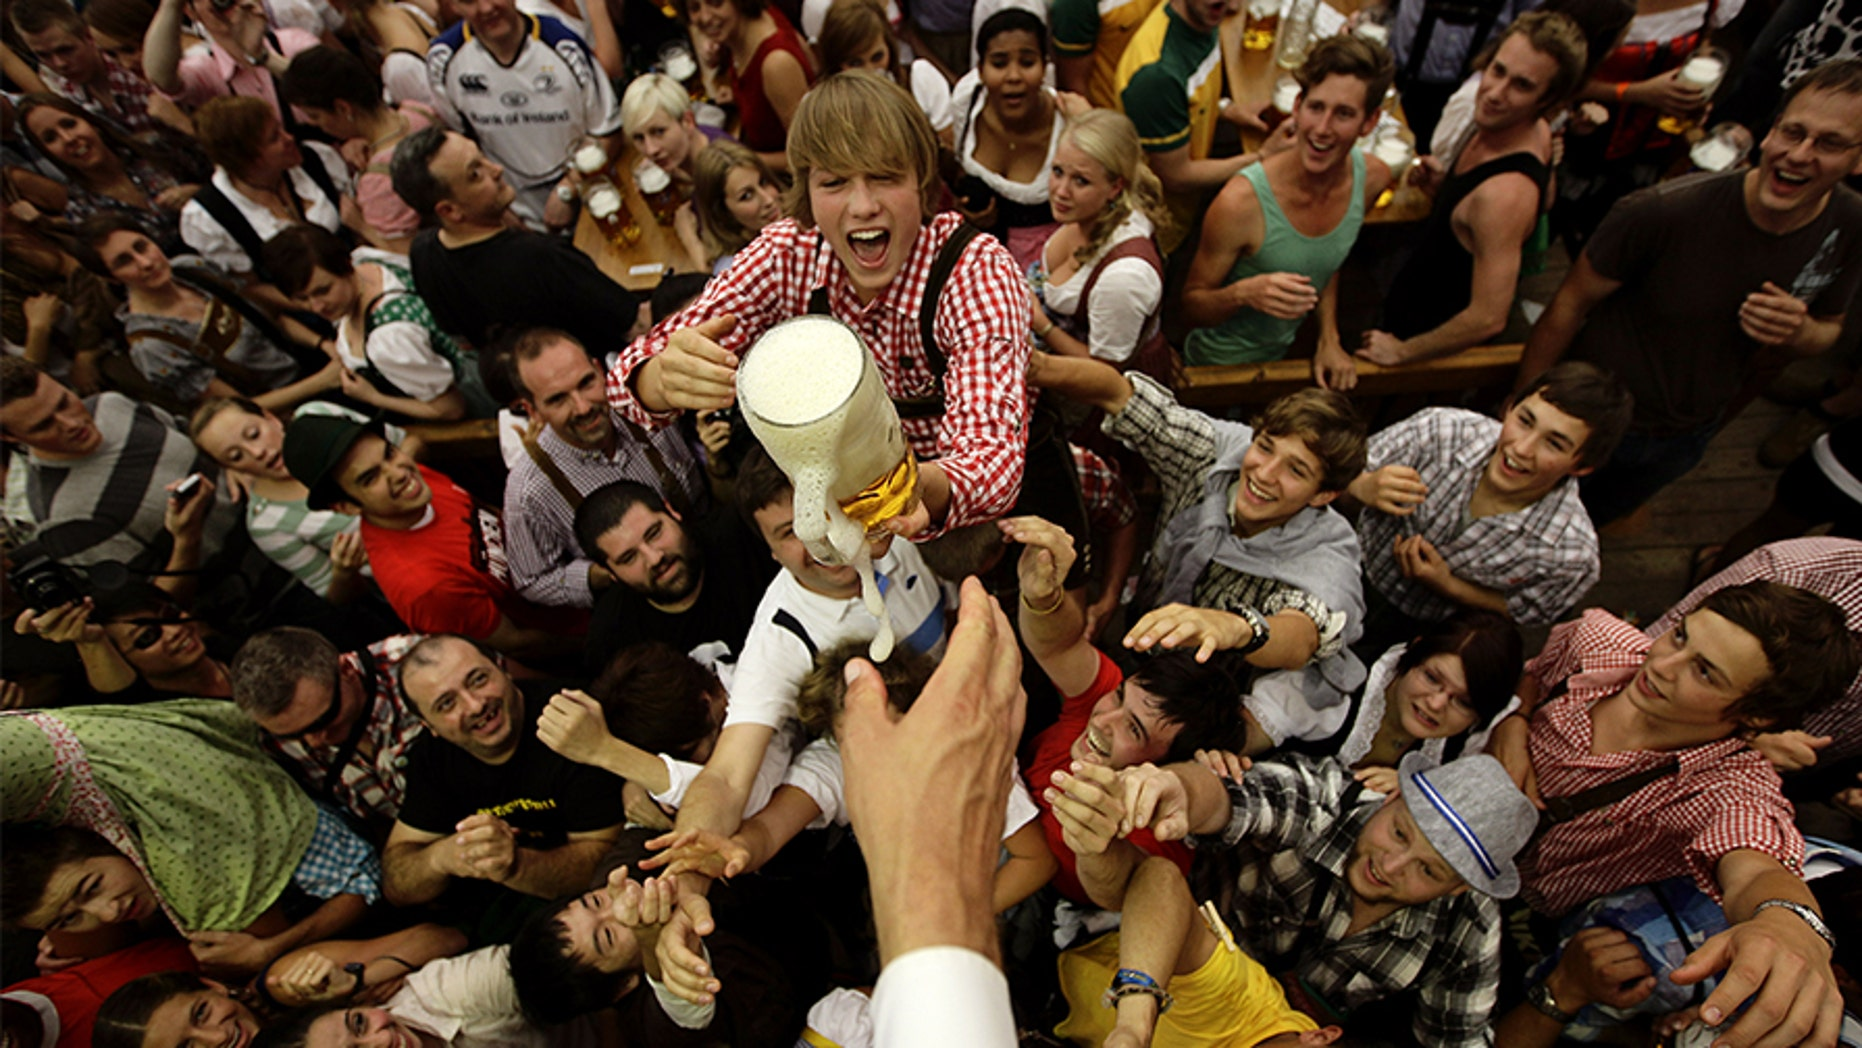 Revelers scuffle for the first free beer in the traditional 1-litre beer mug at the opening of the World's biggest beer fest, the Munich Oktoberfest, at the Theresienwiese in Munich, September 17, 2011.